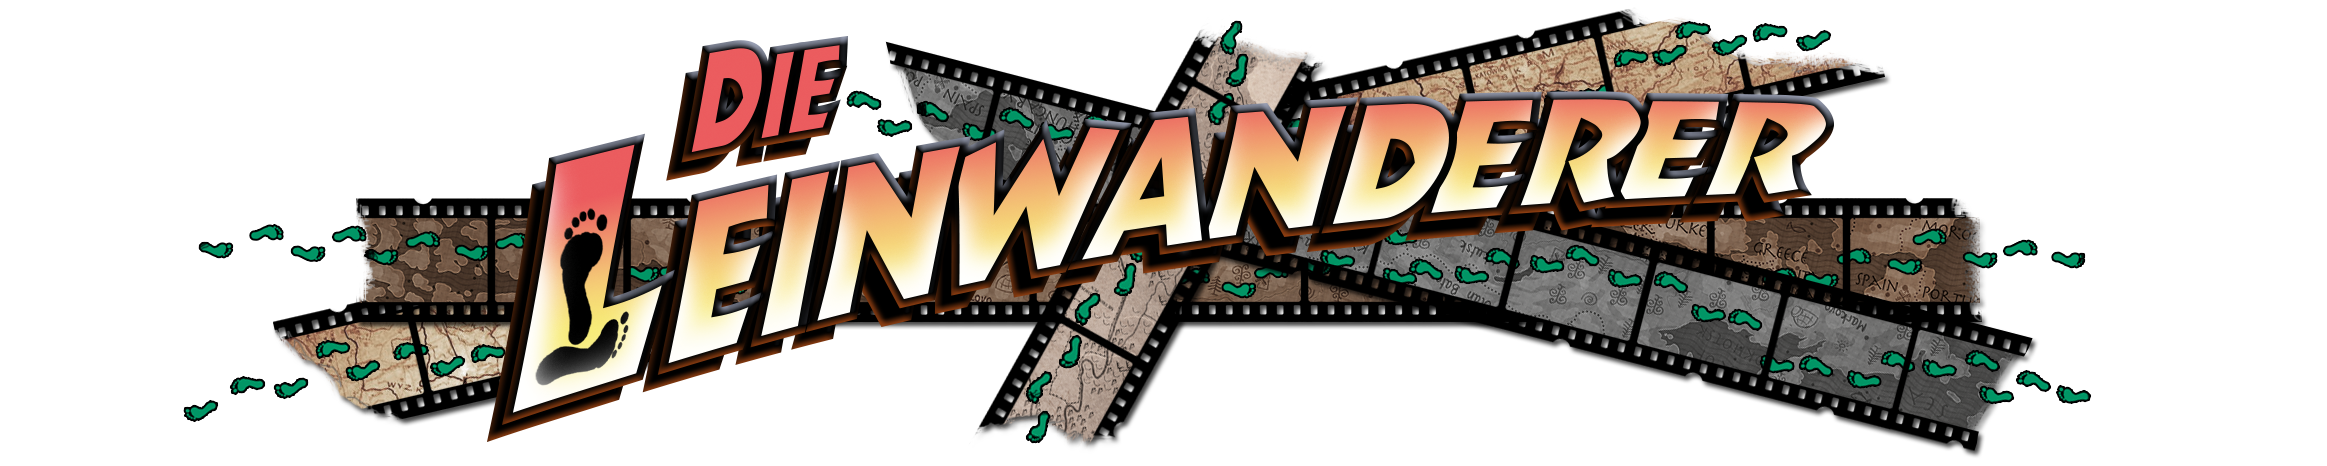 Die Leinwanderer